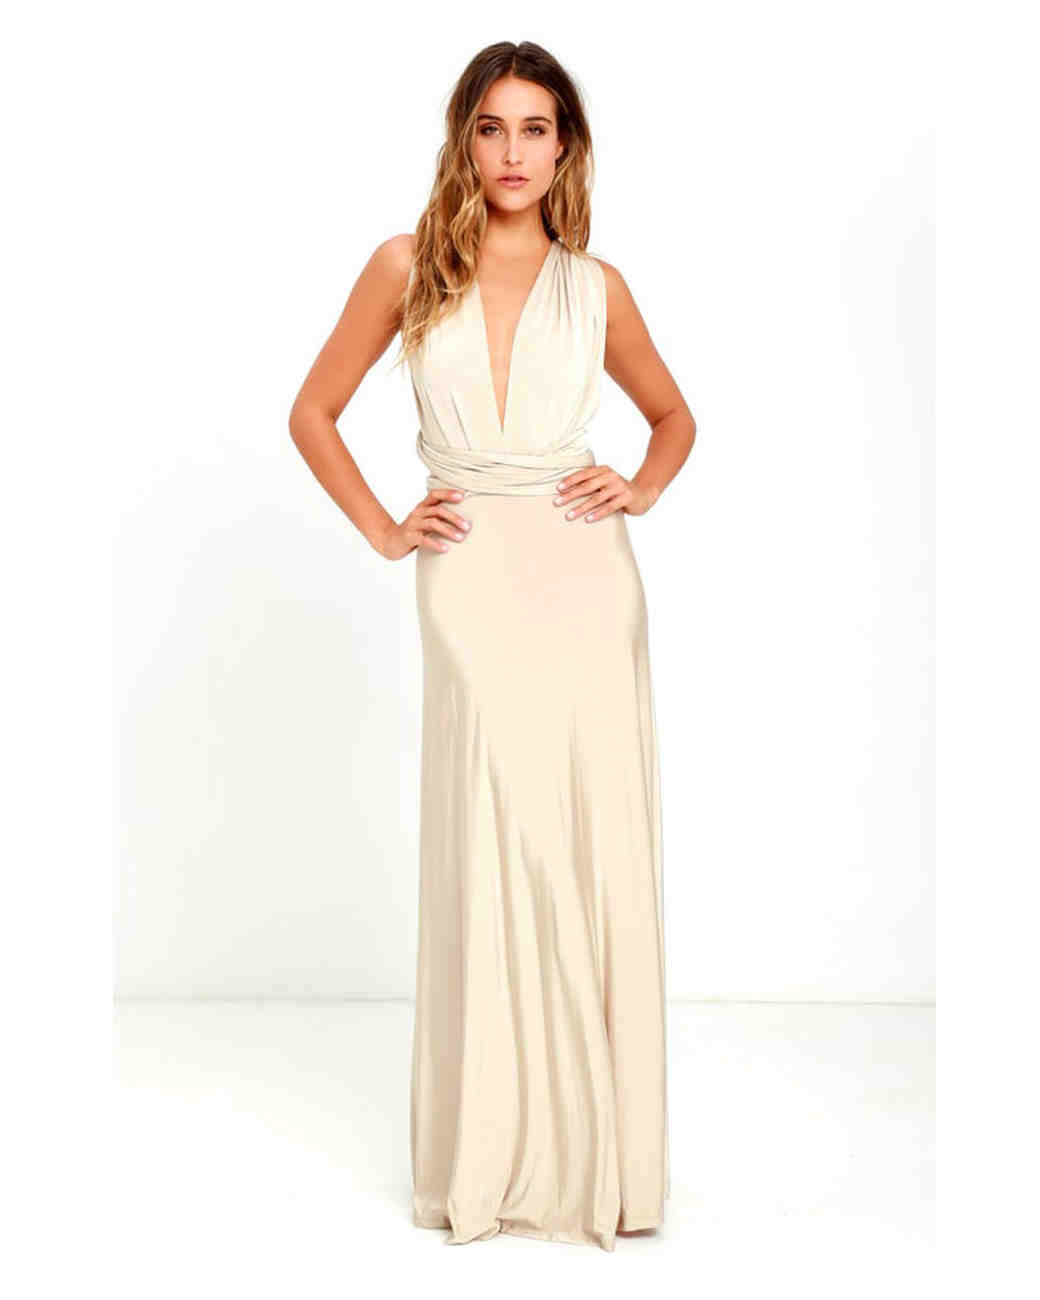 e0024db701c Neutral Beige Bridesmaids  Dresses Your Entire Wedding Party Will Love